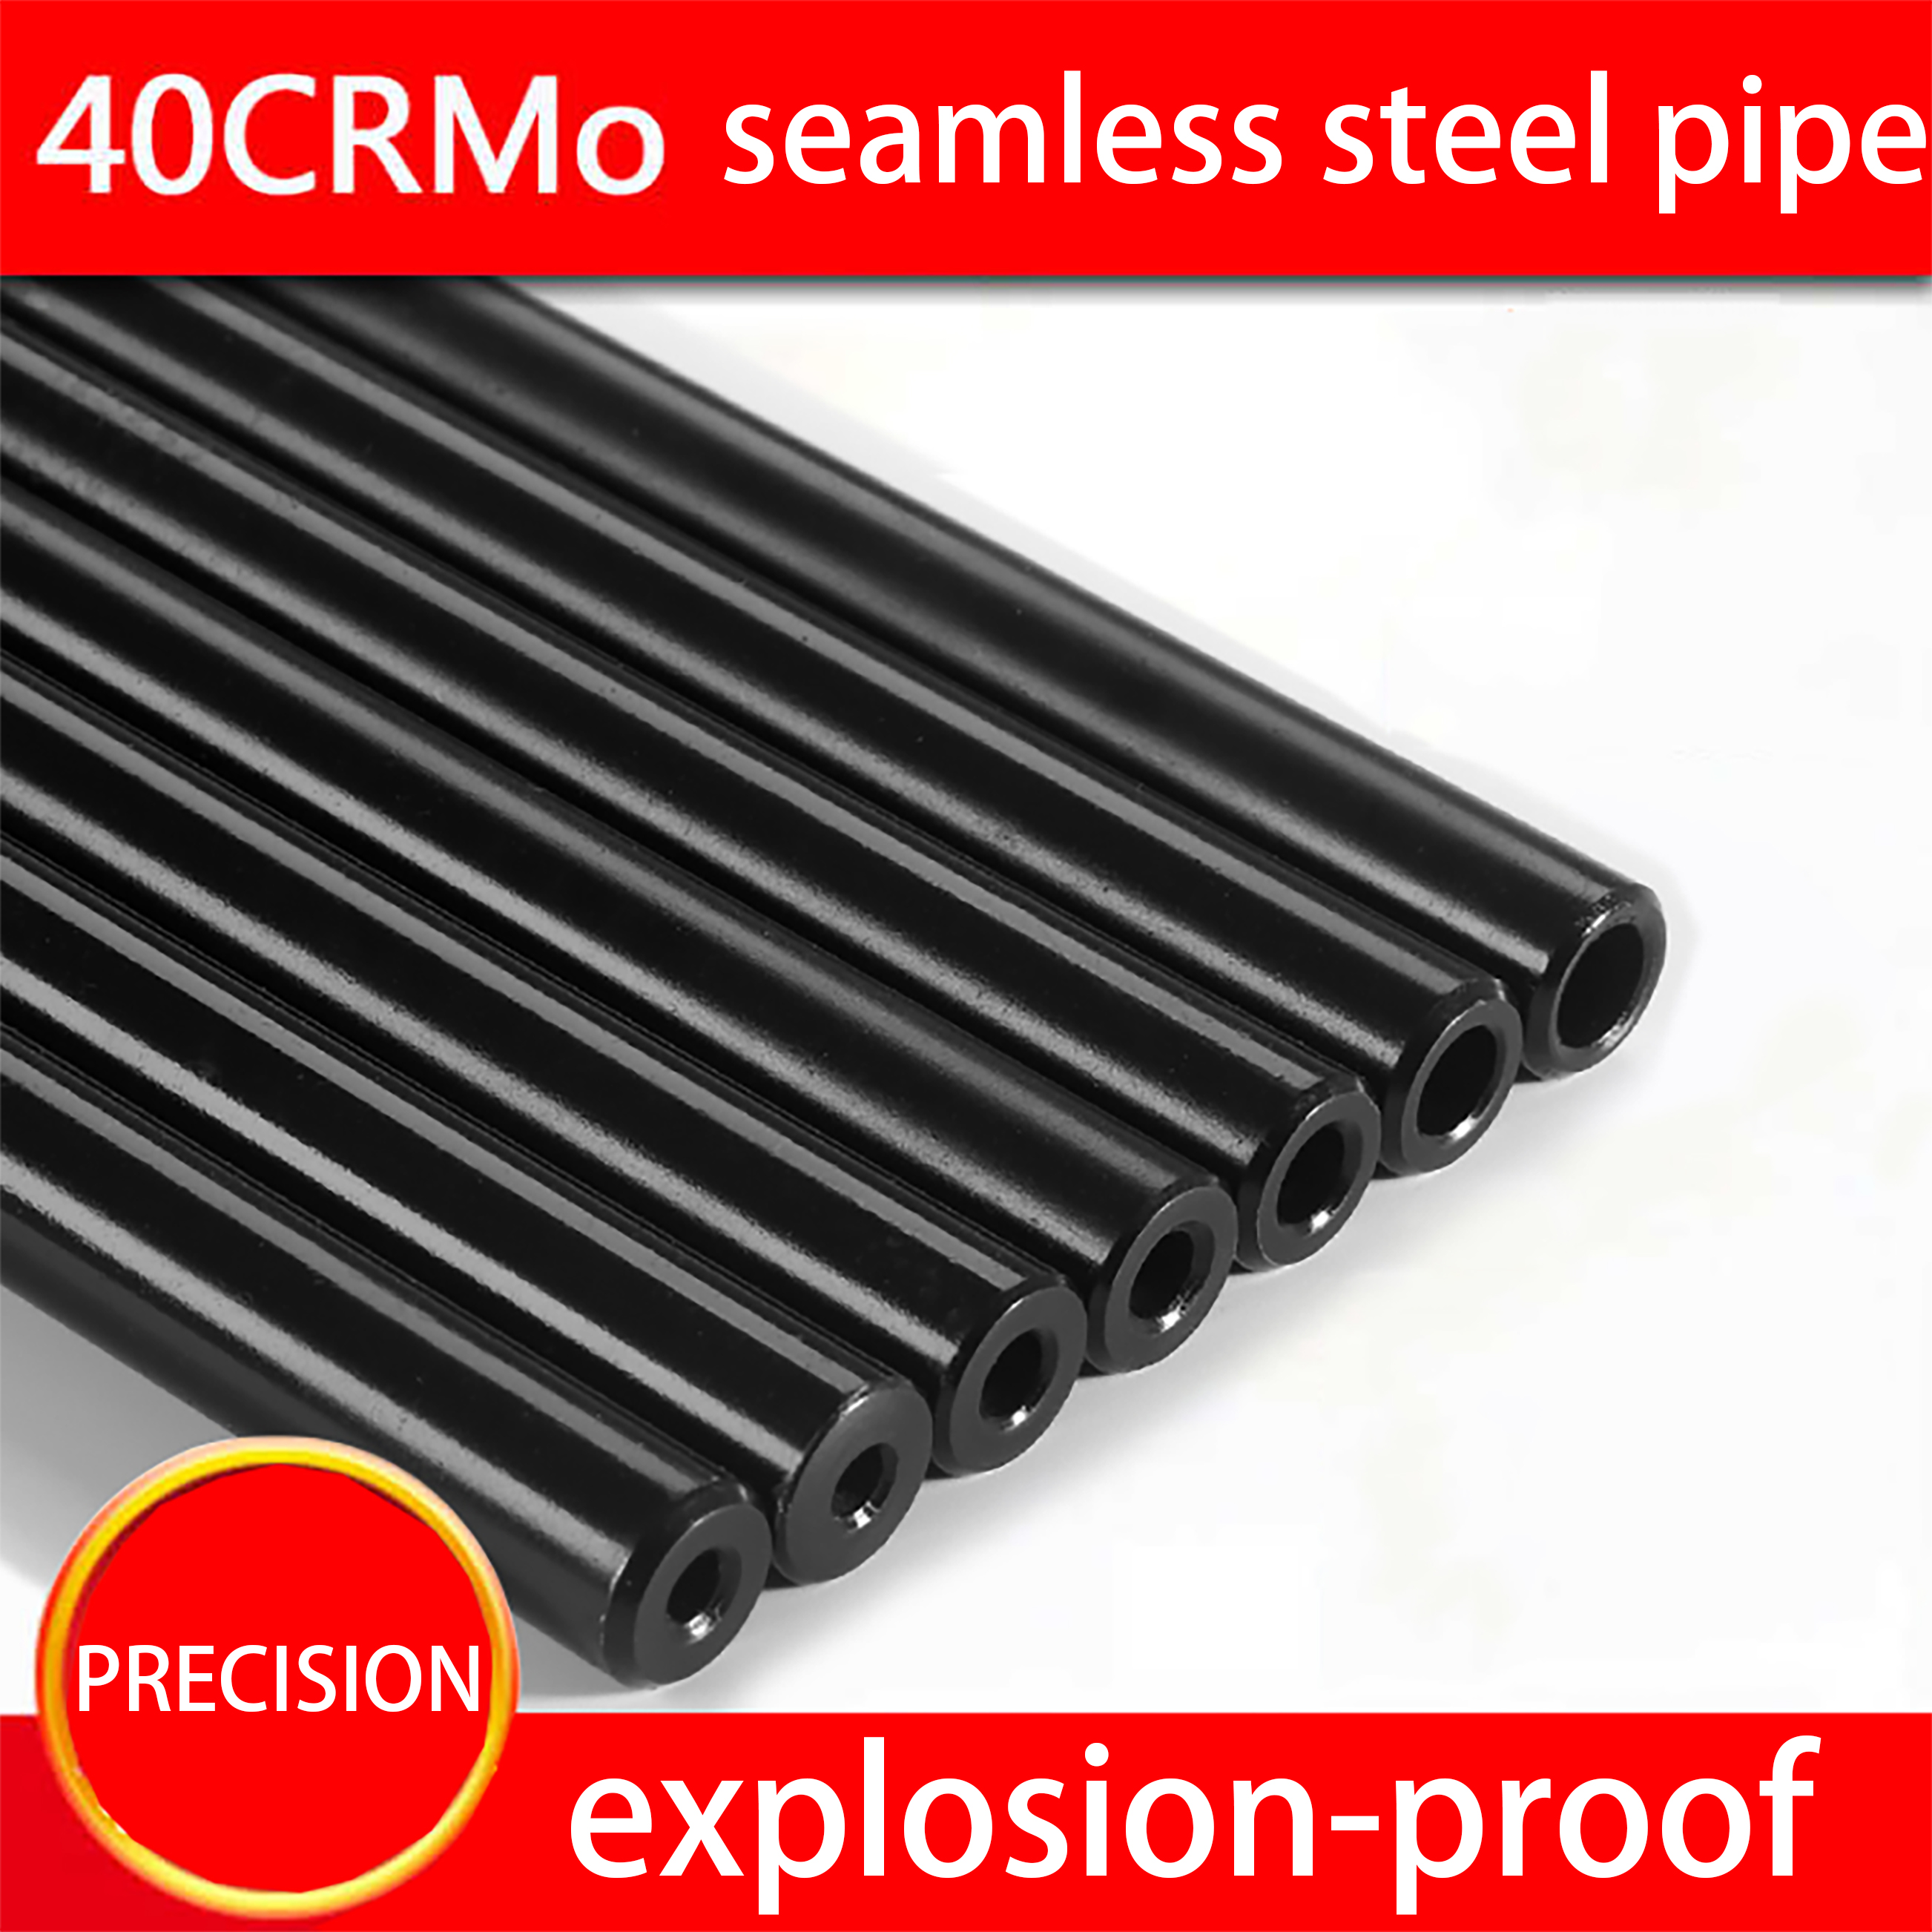 O/D 30mm Seamless Steel Hydraulic Seamless Tube Structural Pipe Explosion-proof Steel Pipe